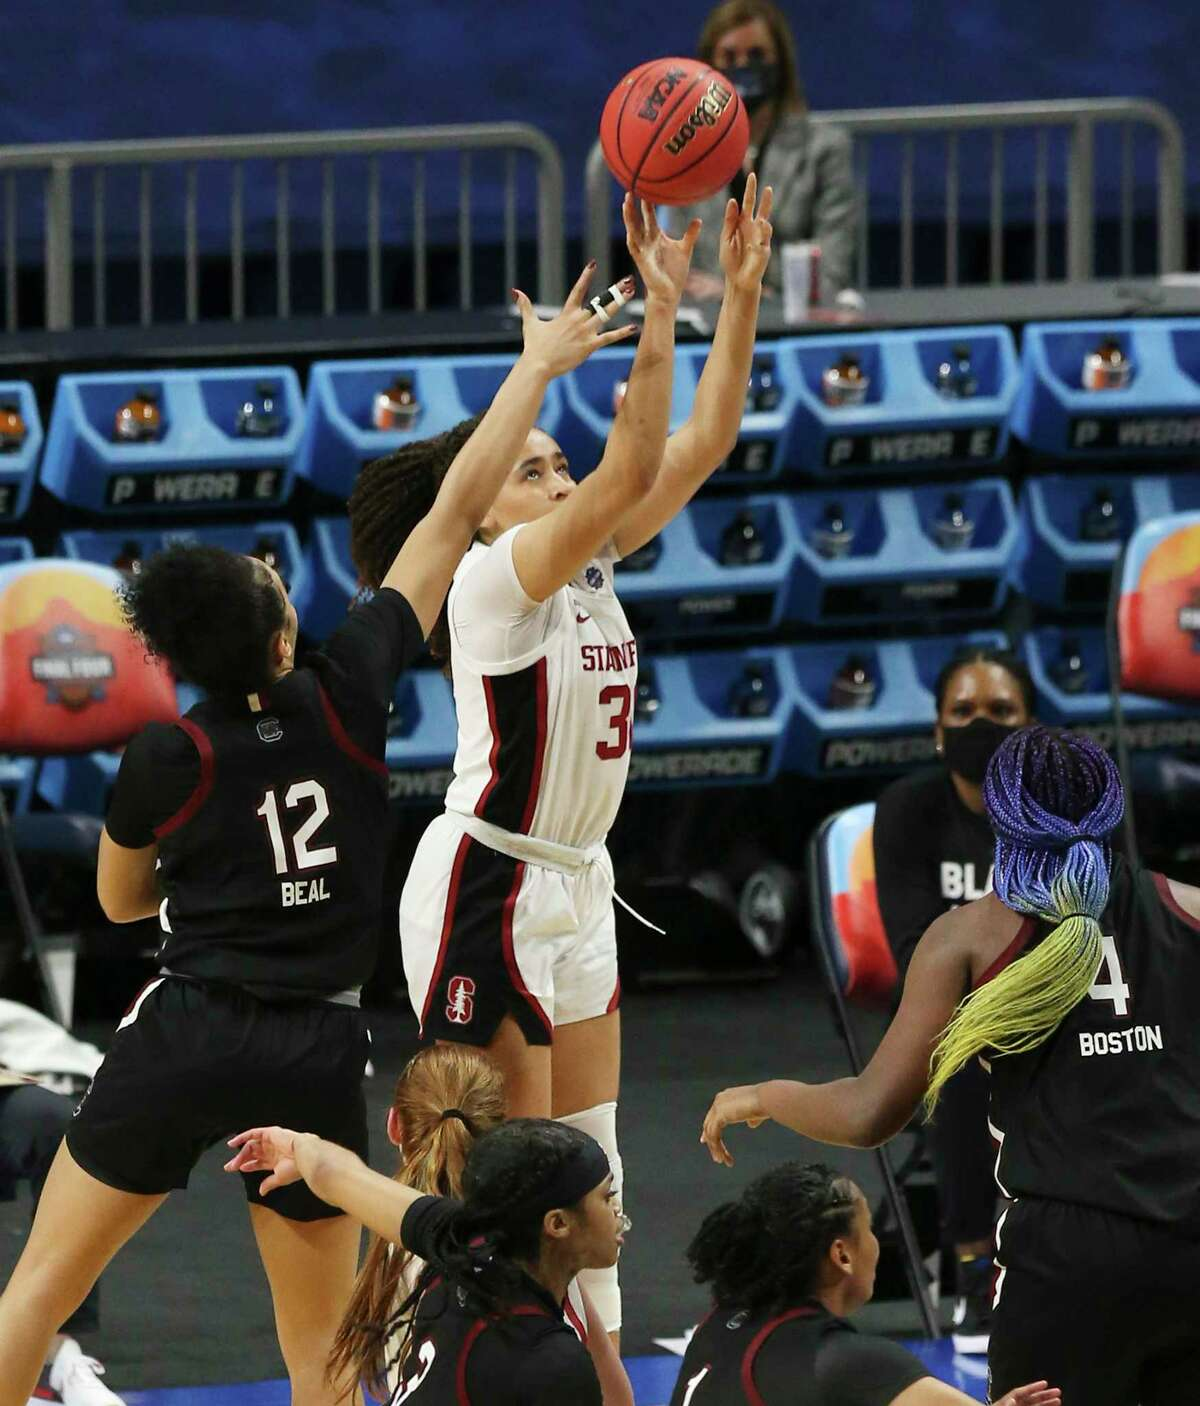 Stanford's Haley Jones (30) hits the go ahead score against South Carolina's Brea Beal (12) during their 2021 NCAA Women's Final Four national semifinal basketball game at the Alamodome on Friday, Apr. 2, 2021. Stanford defeated South Carolina, 66-65 to advance to the championship game.